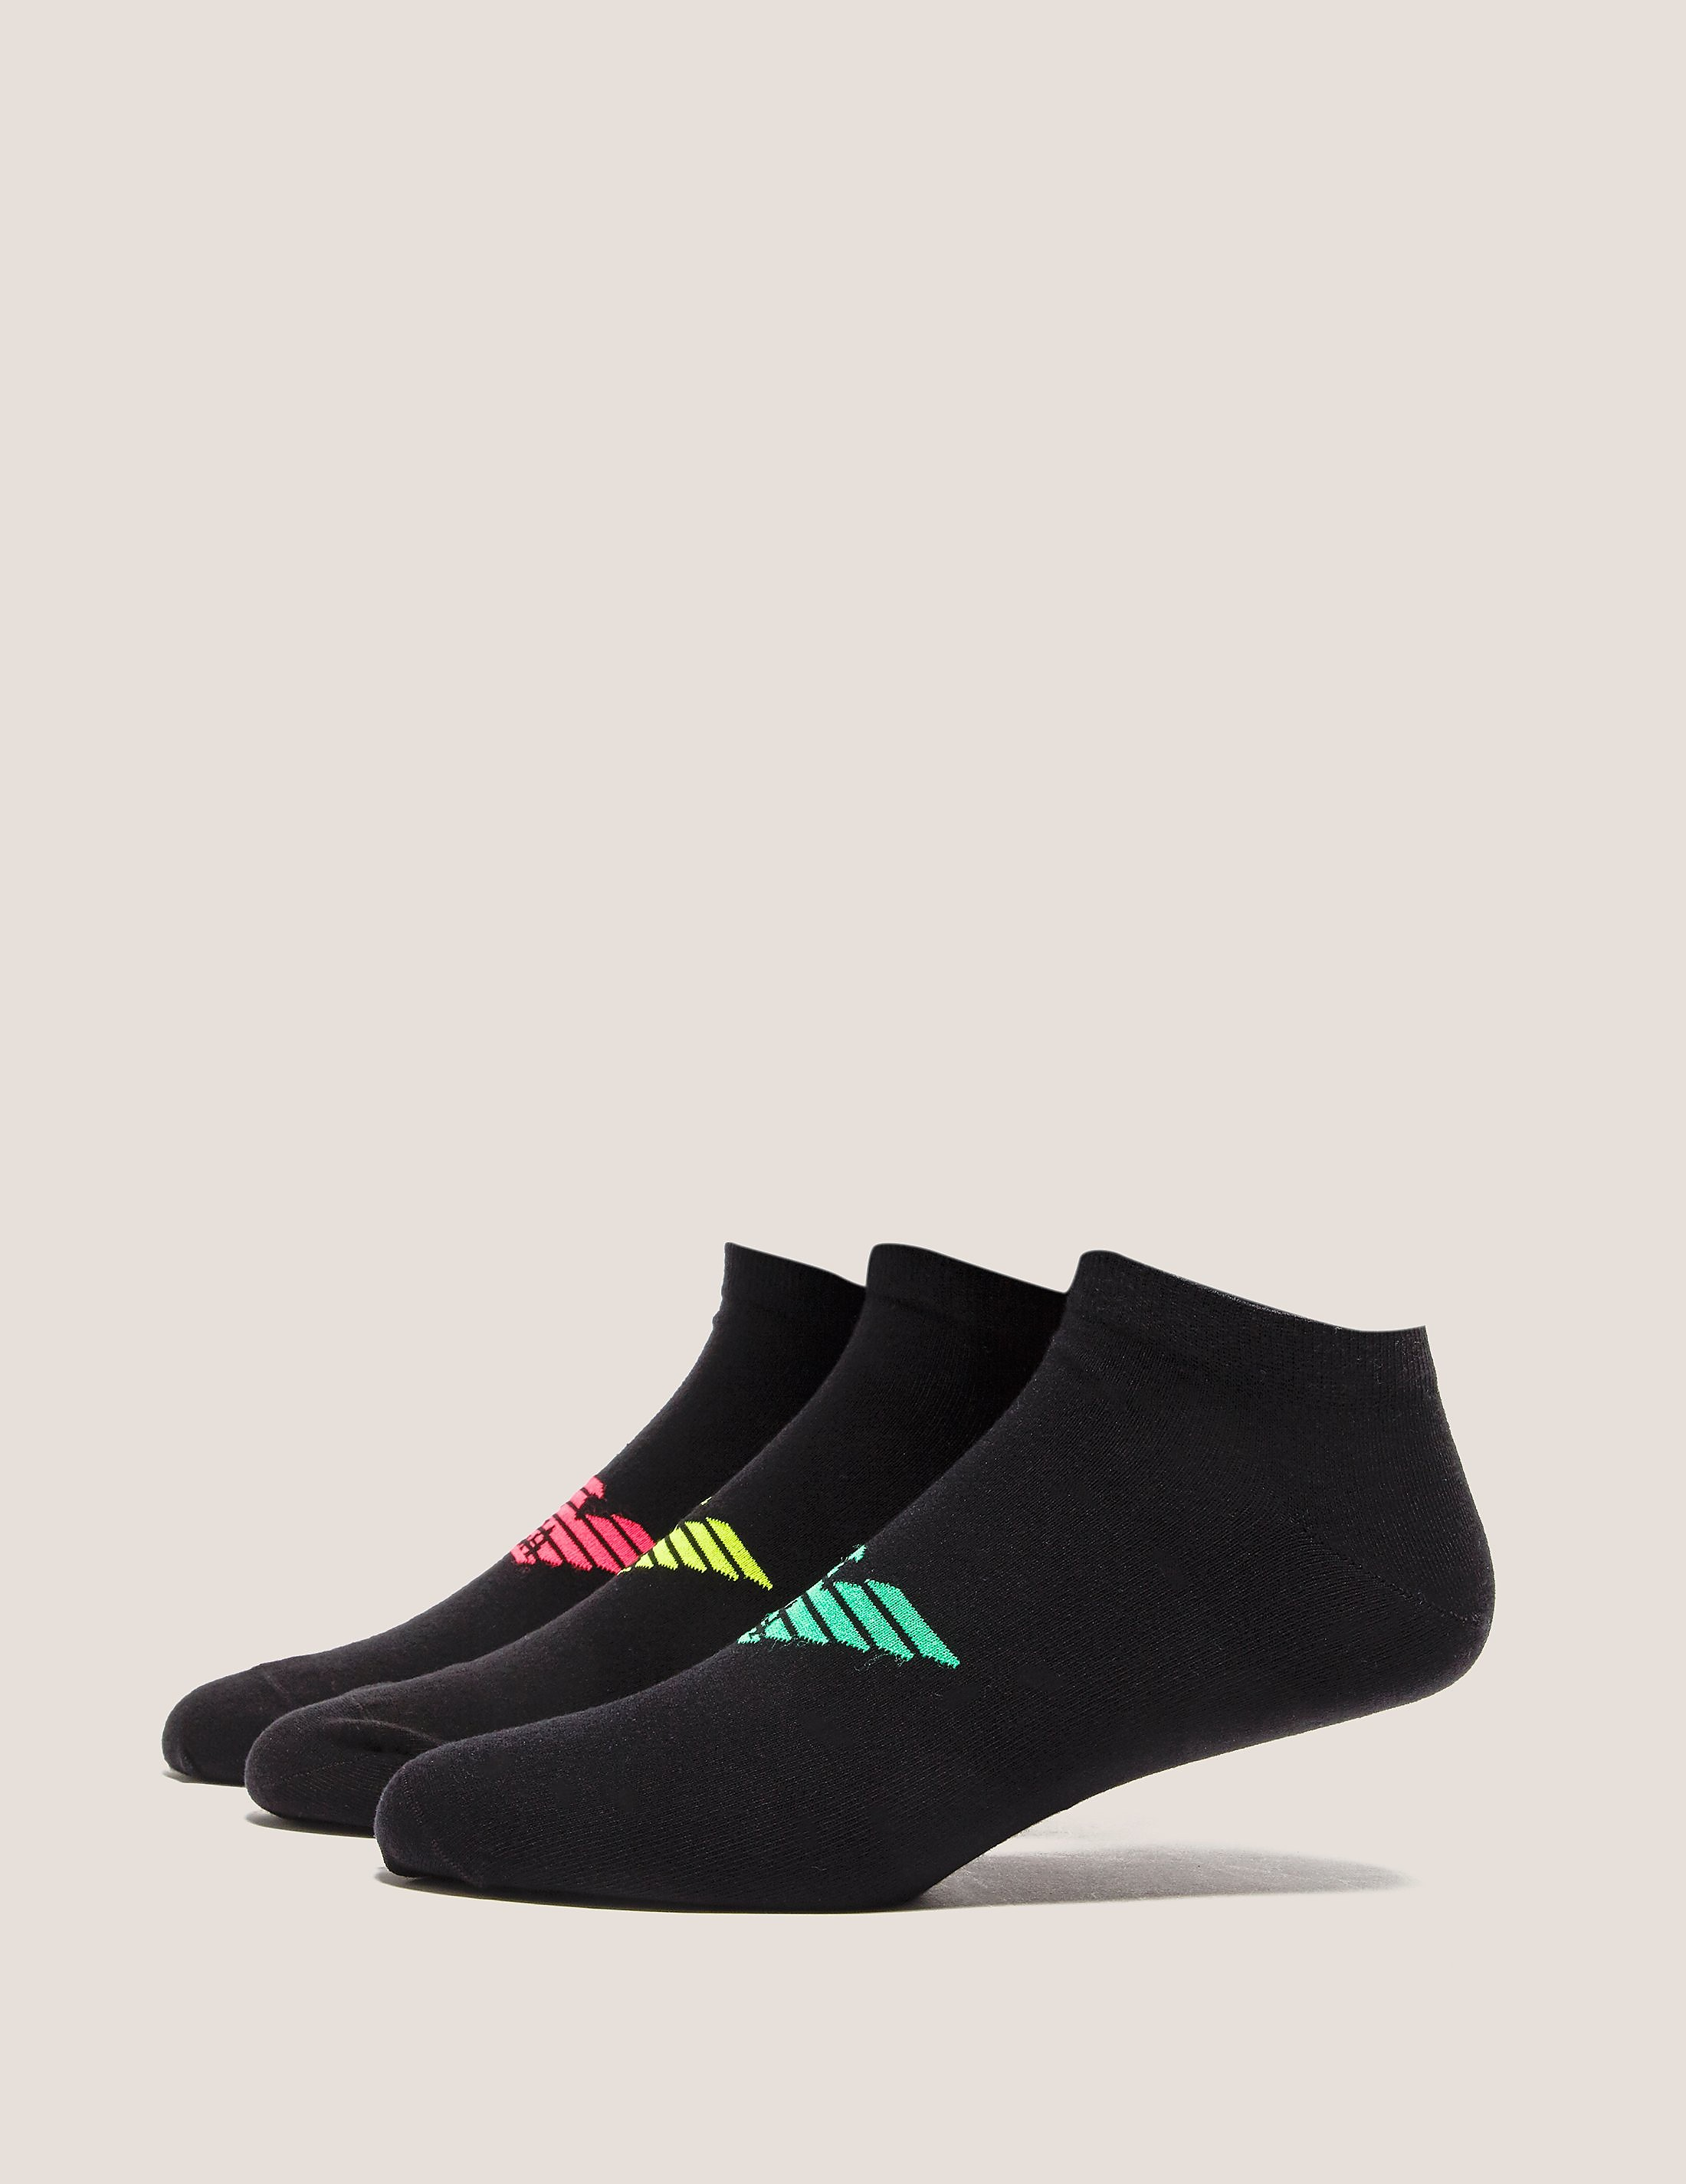 Emporio Armani In-Shoe Socks